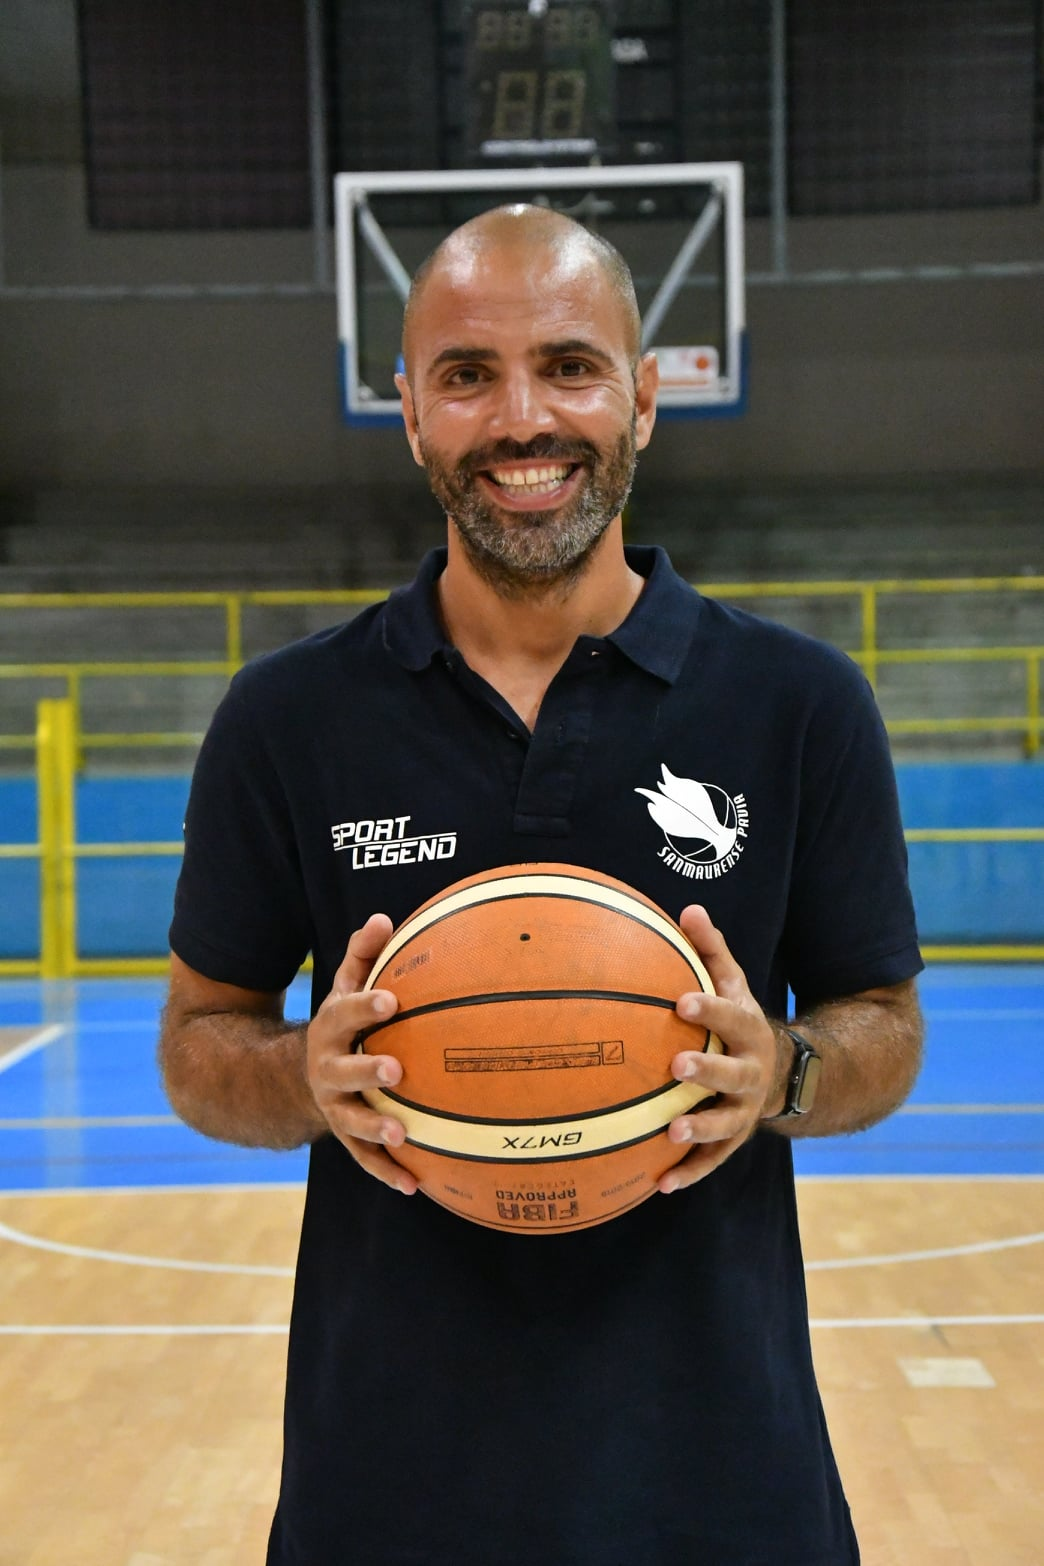 https://www.sanmaurense.it/basket/wp-content/uploads/2021/01/Andrea-Fossati.jpg